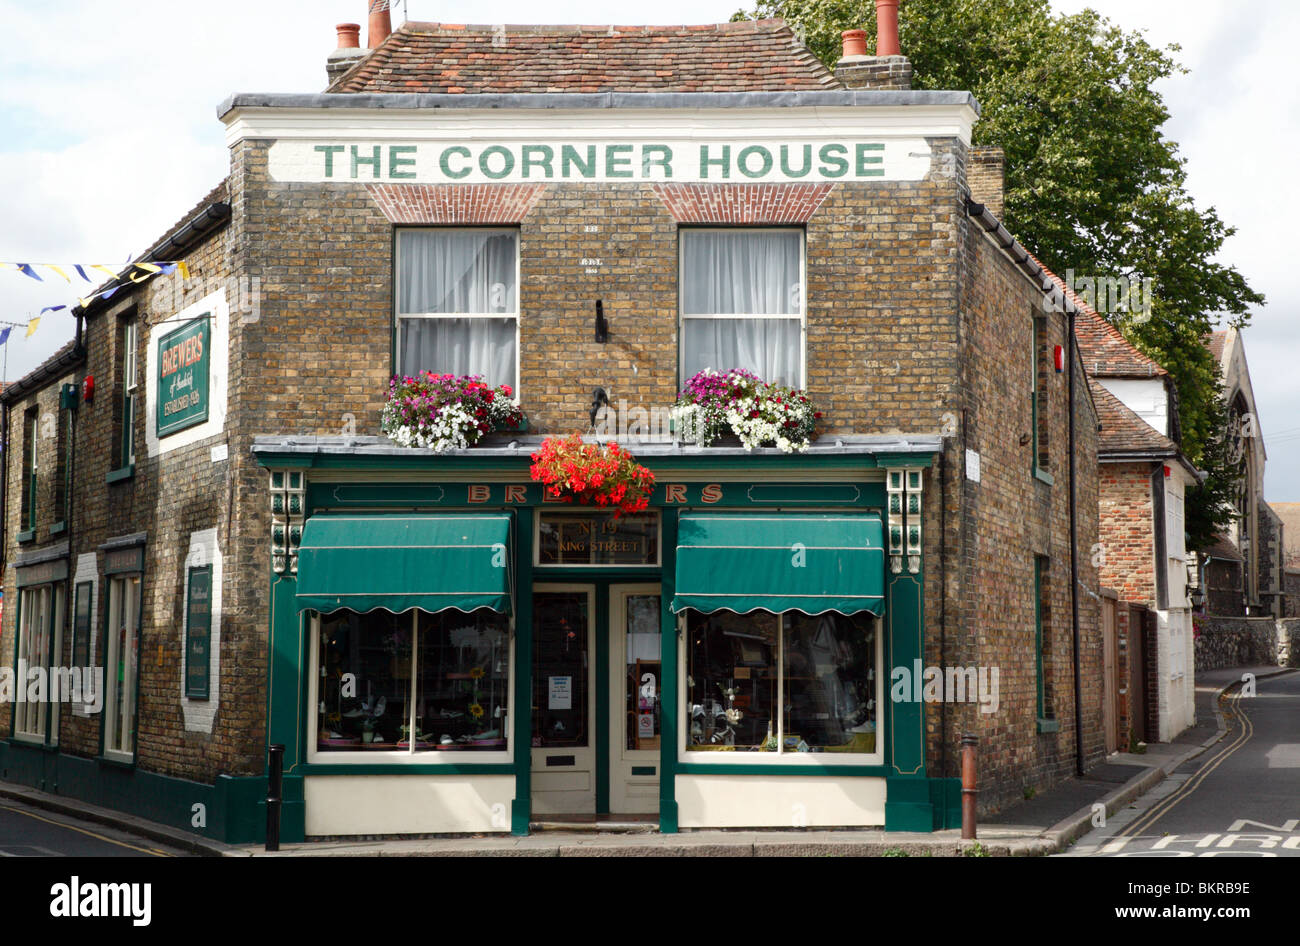 Brewers Shoe Shop, The Corner House,  King Street, Sandwich, Kent - Stock Image